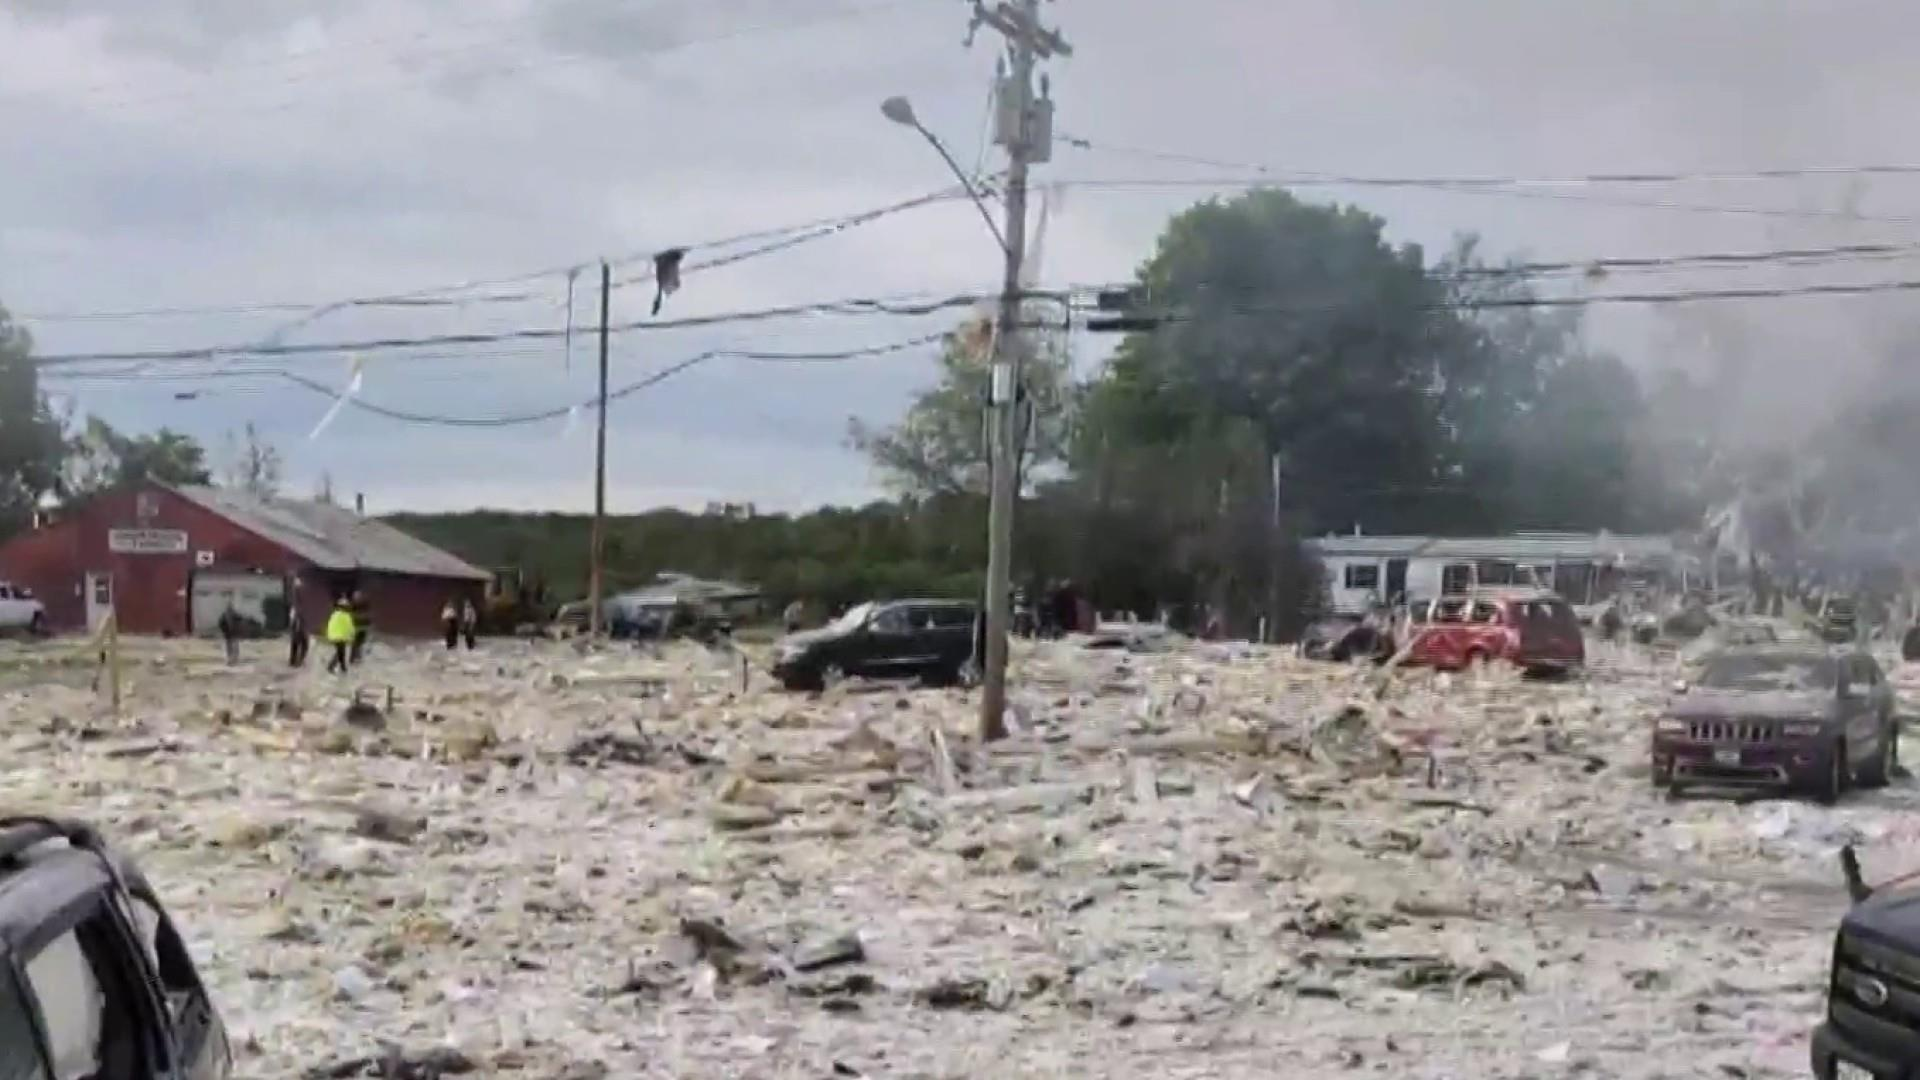 Massive gas explosion kills firefighter, injures several other people